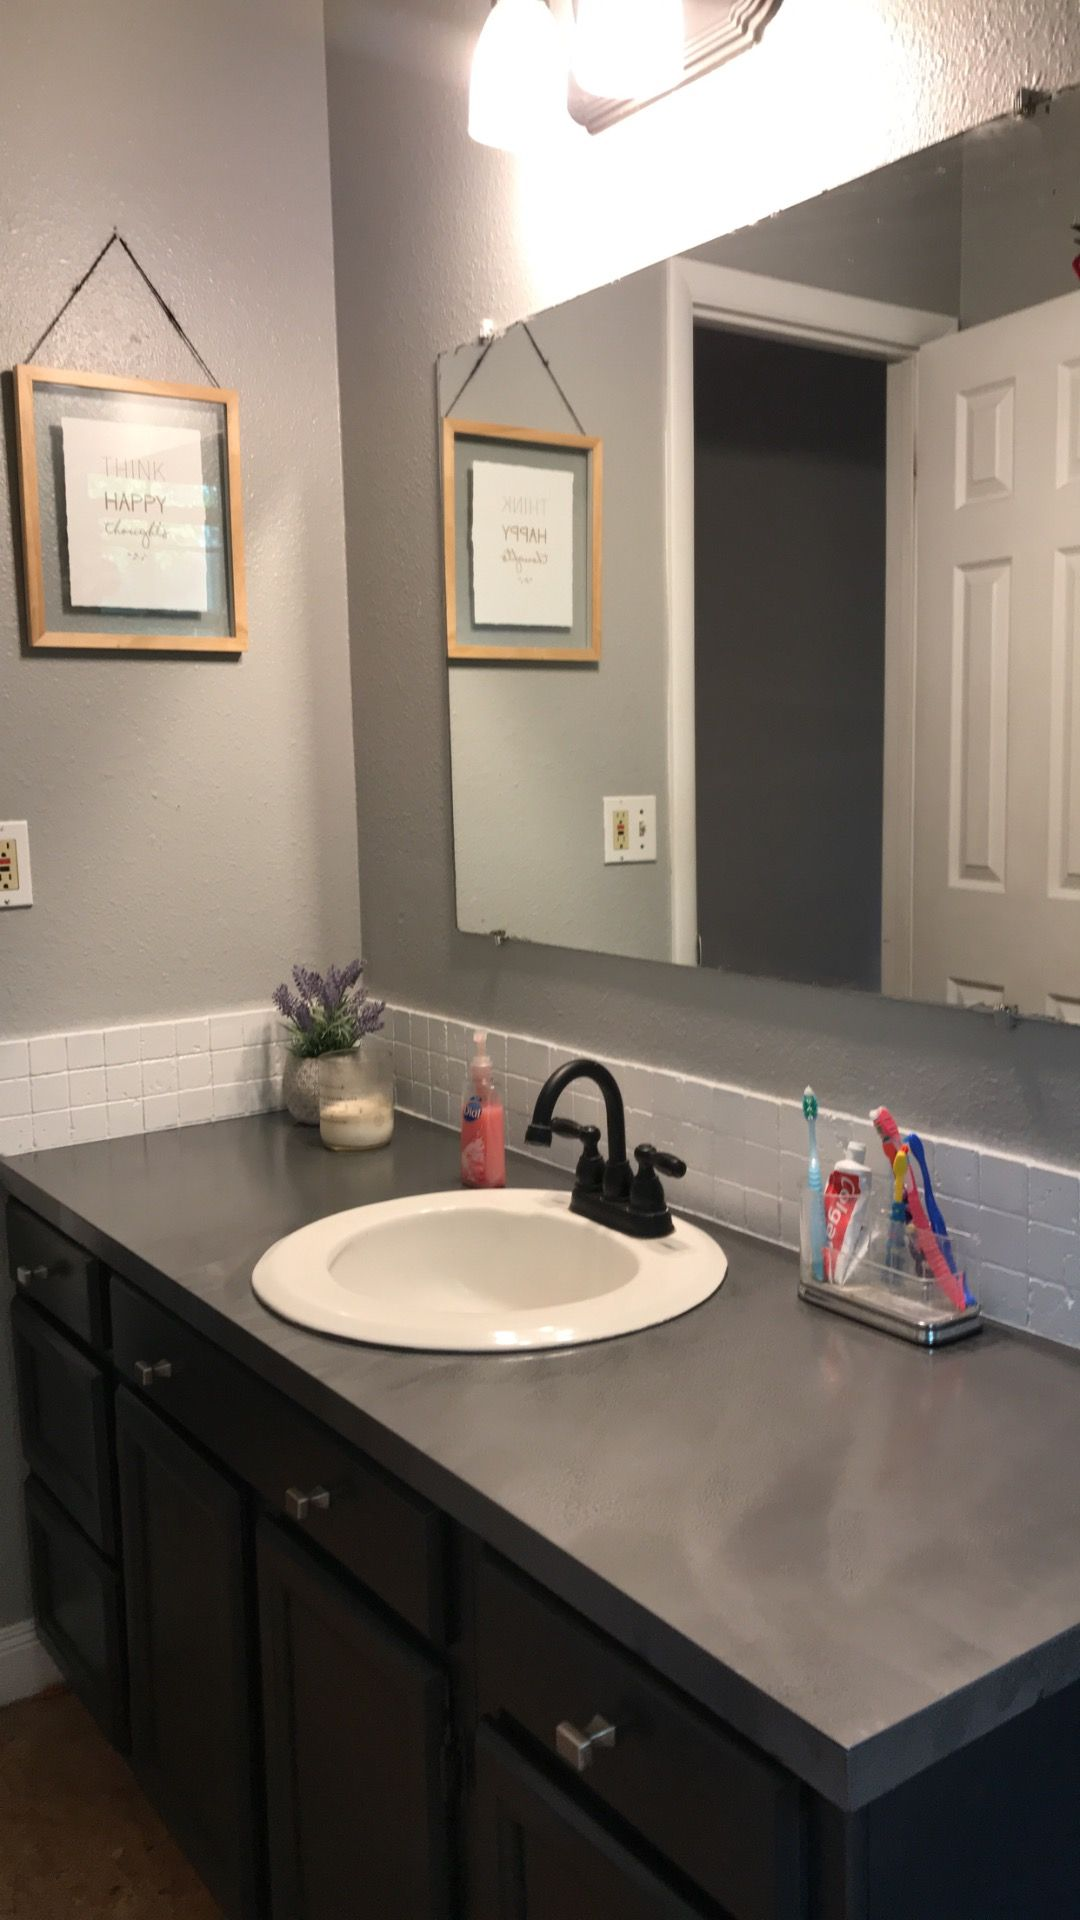 Spray Painted Counter Tops Using Rustolem Textured Paint Hammered